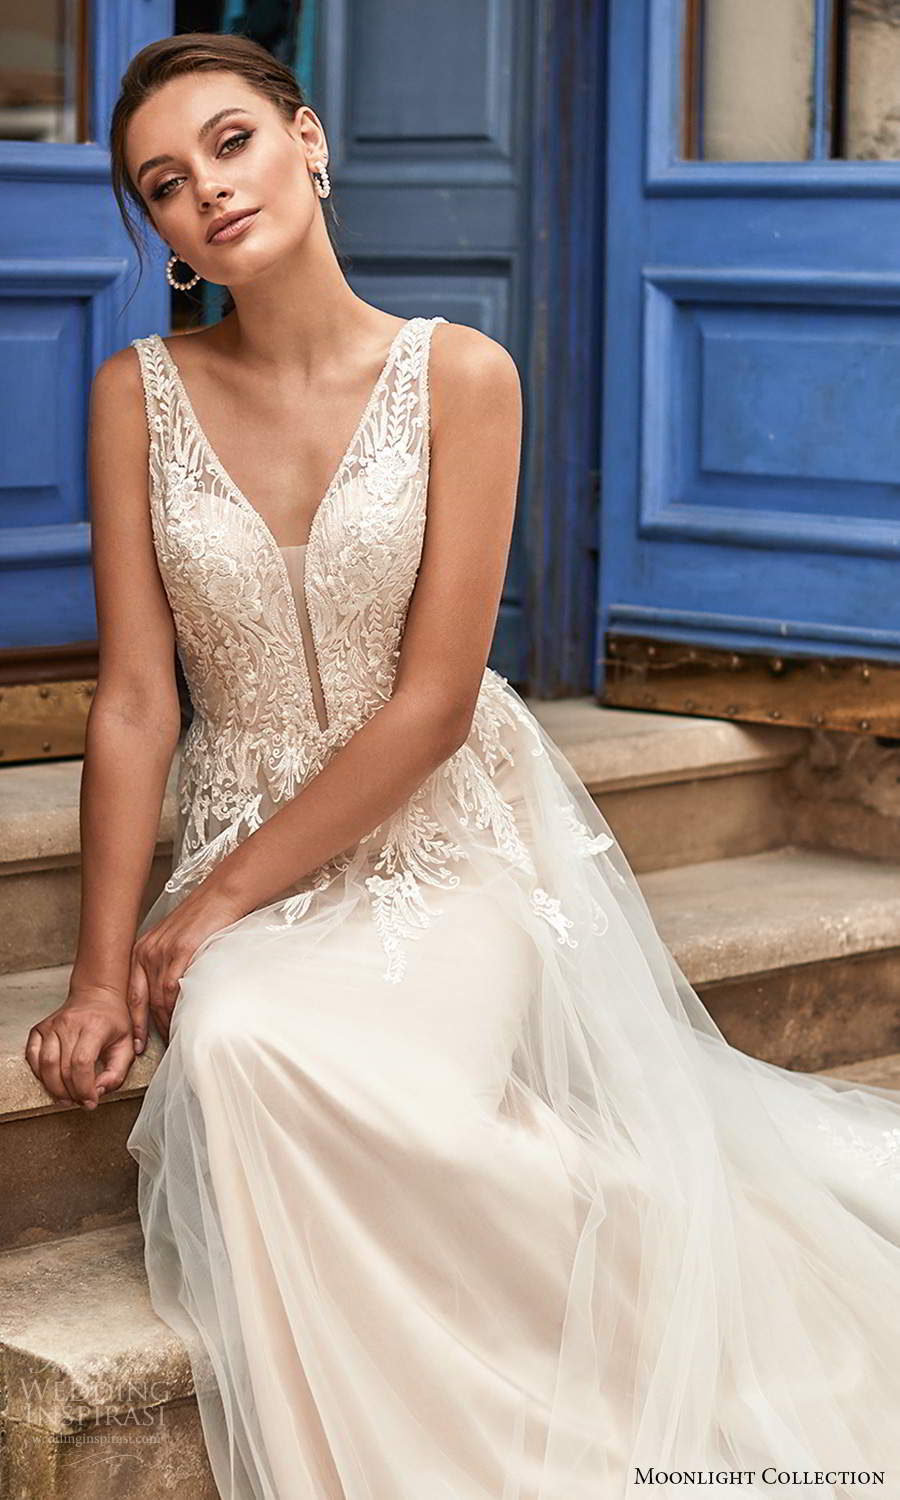 moonlight collection spring 2021 bridal sleeveless straps plunging v neckline embellished bodie a line ball gown wedding dress chapel train blush (1) zv